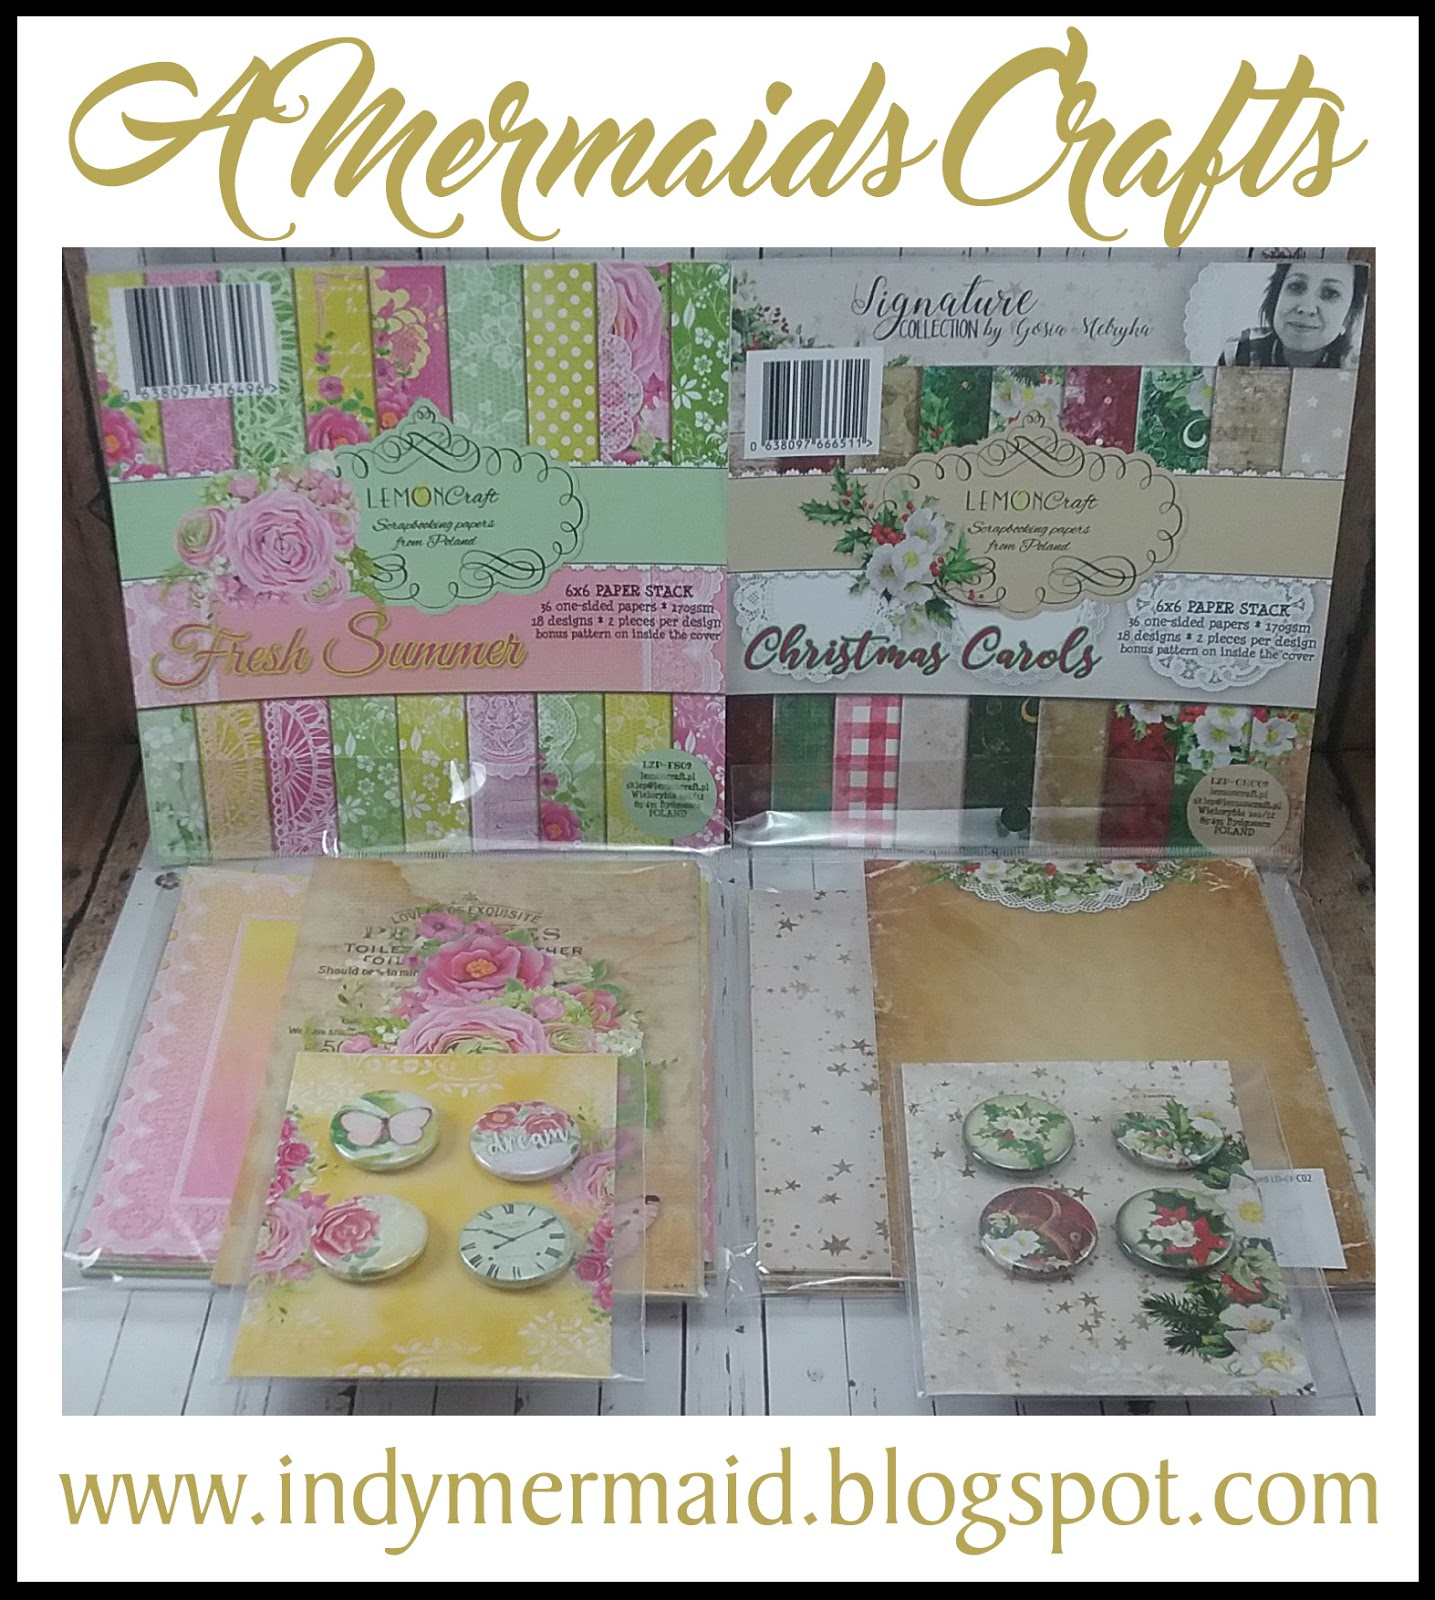 A MERMAIDS CRAFTS GIVEAWAY!